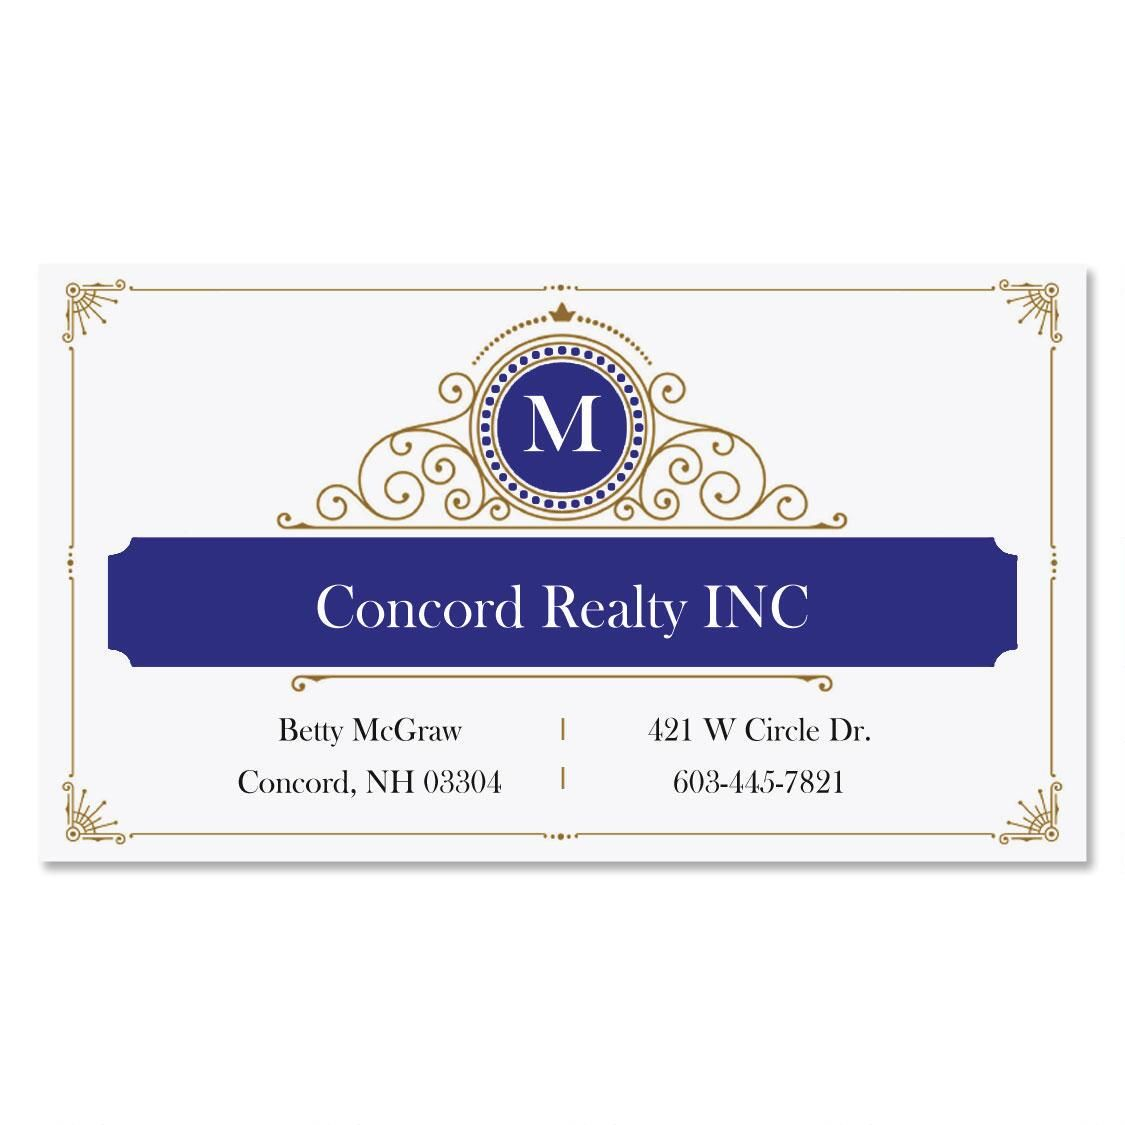 Initial Branding Standard Business Cards